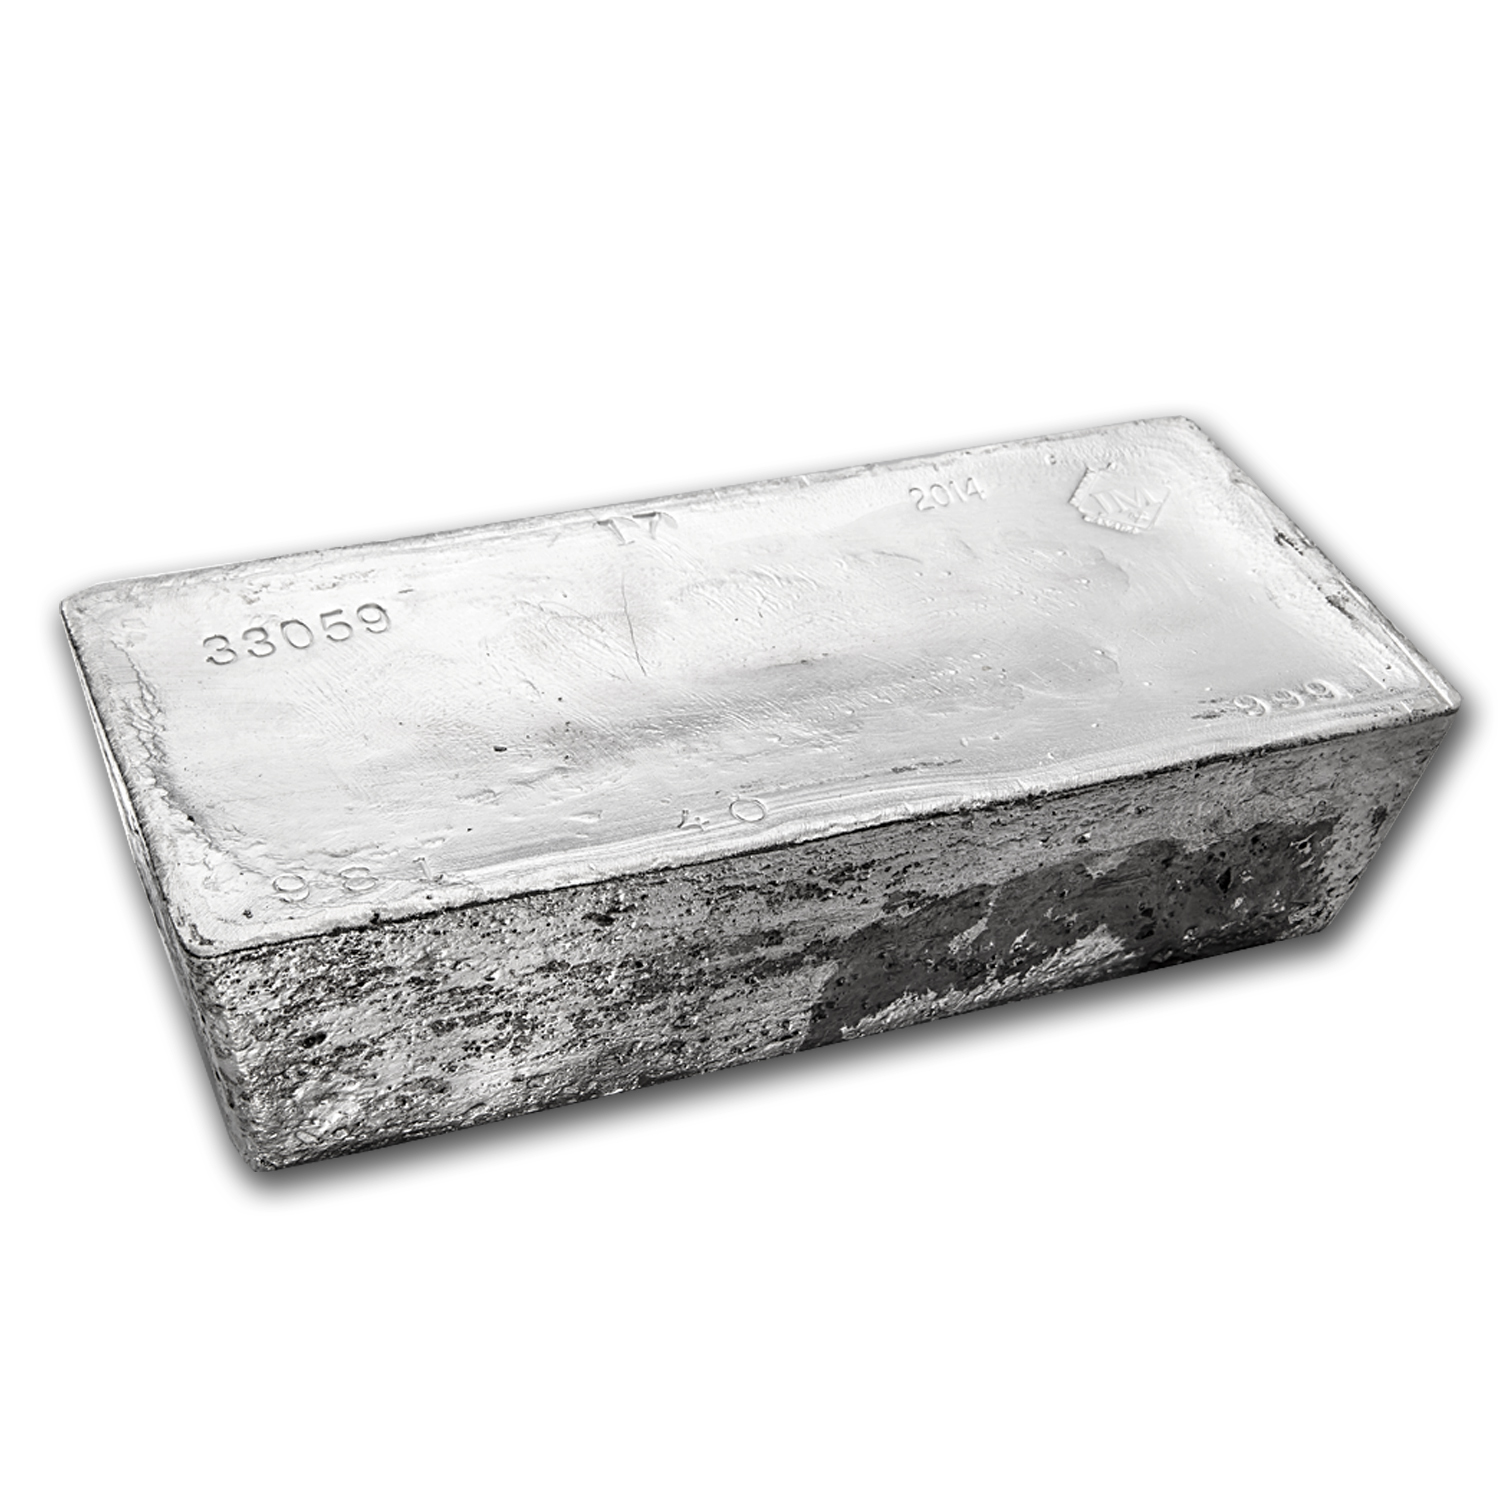 949.70 oz Silver Bars - Johnson Matthey